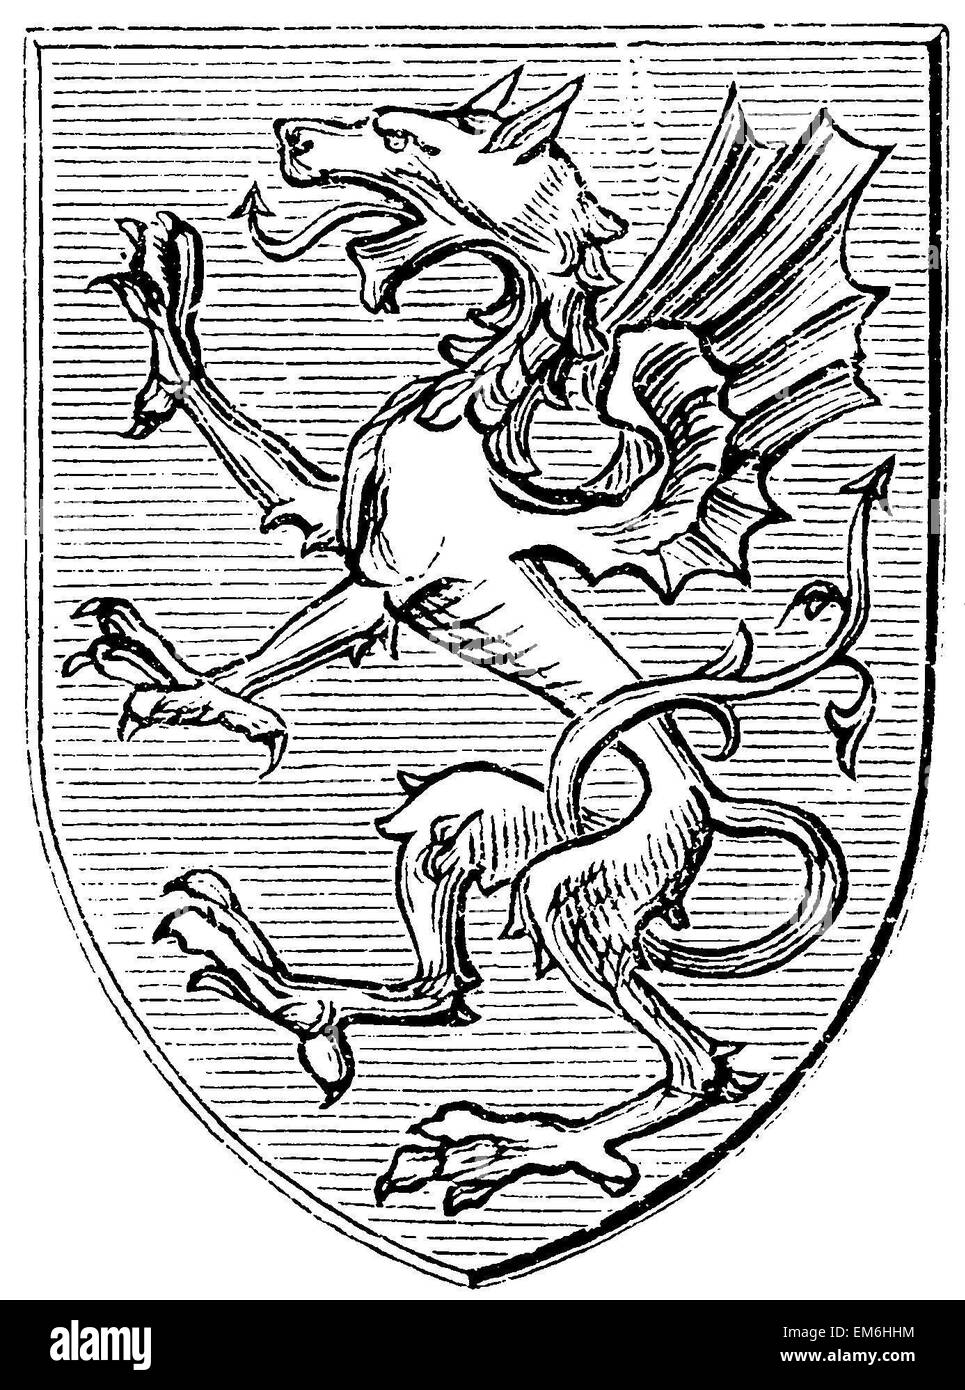 Heraldic Dragon from the later Middle Ages - Stock Image